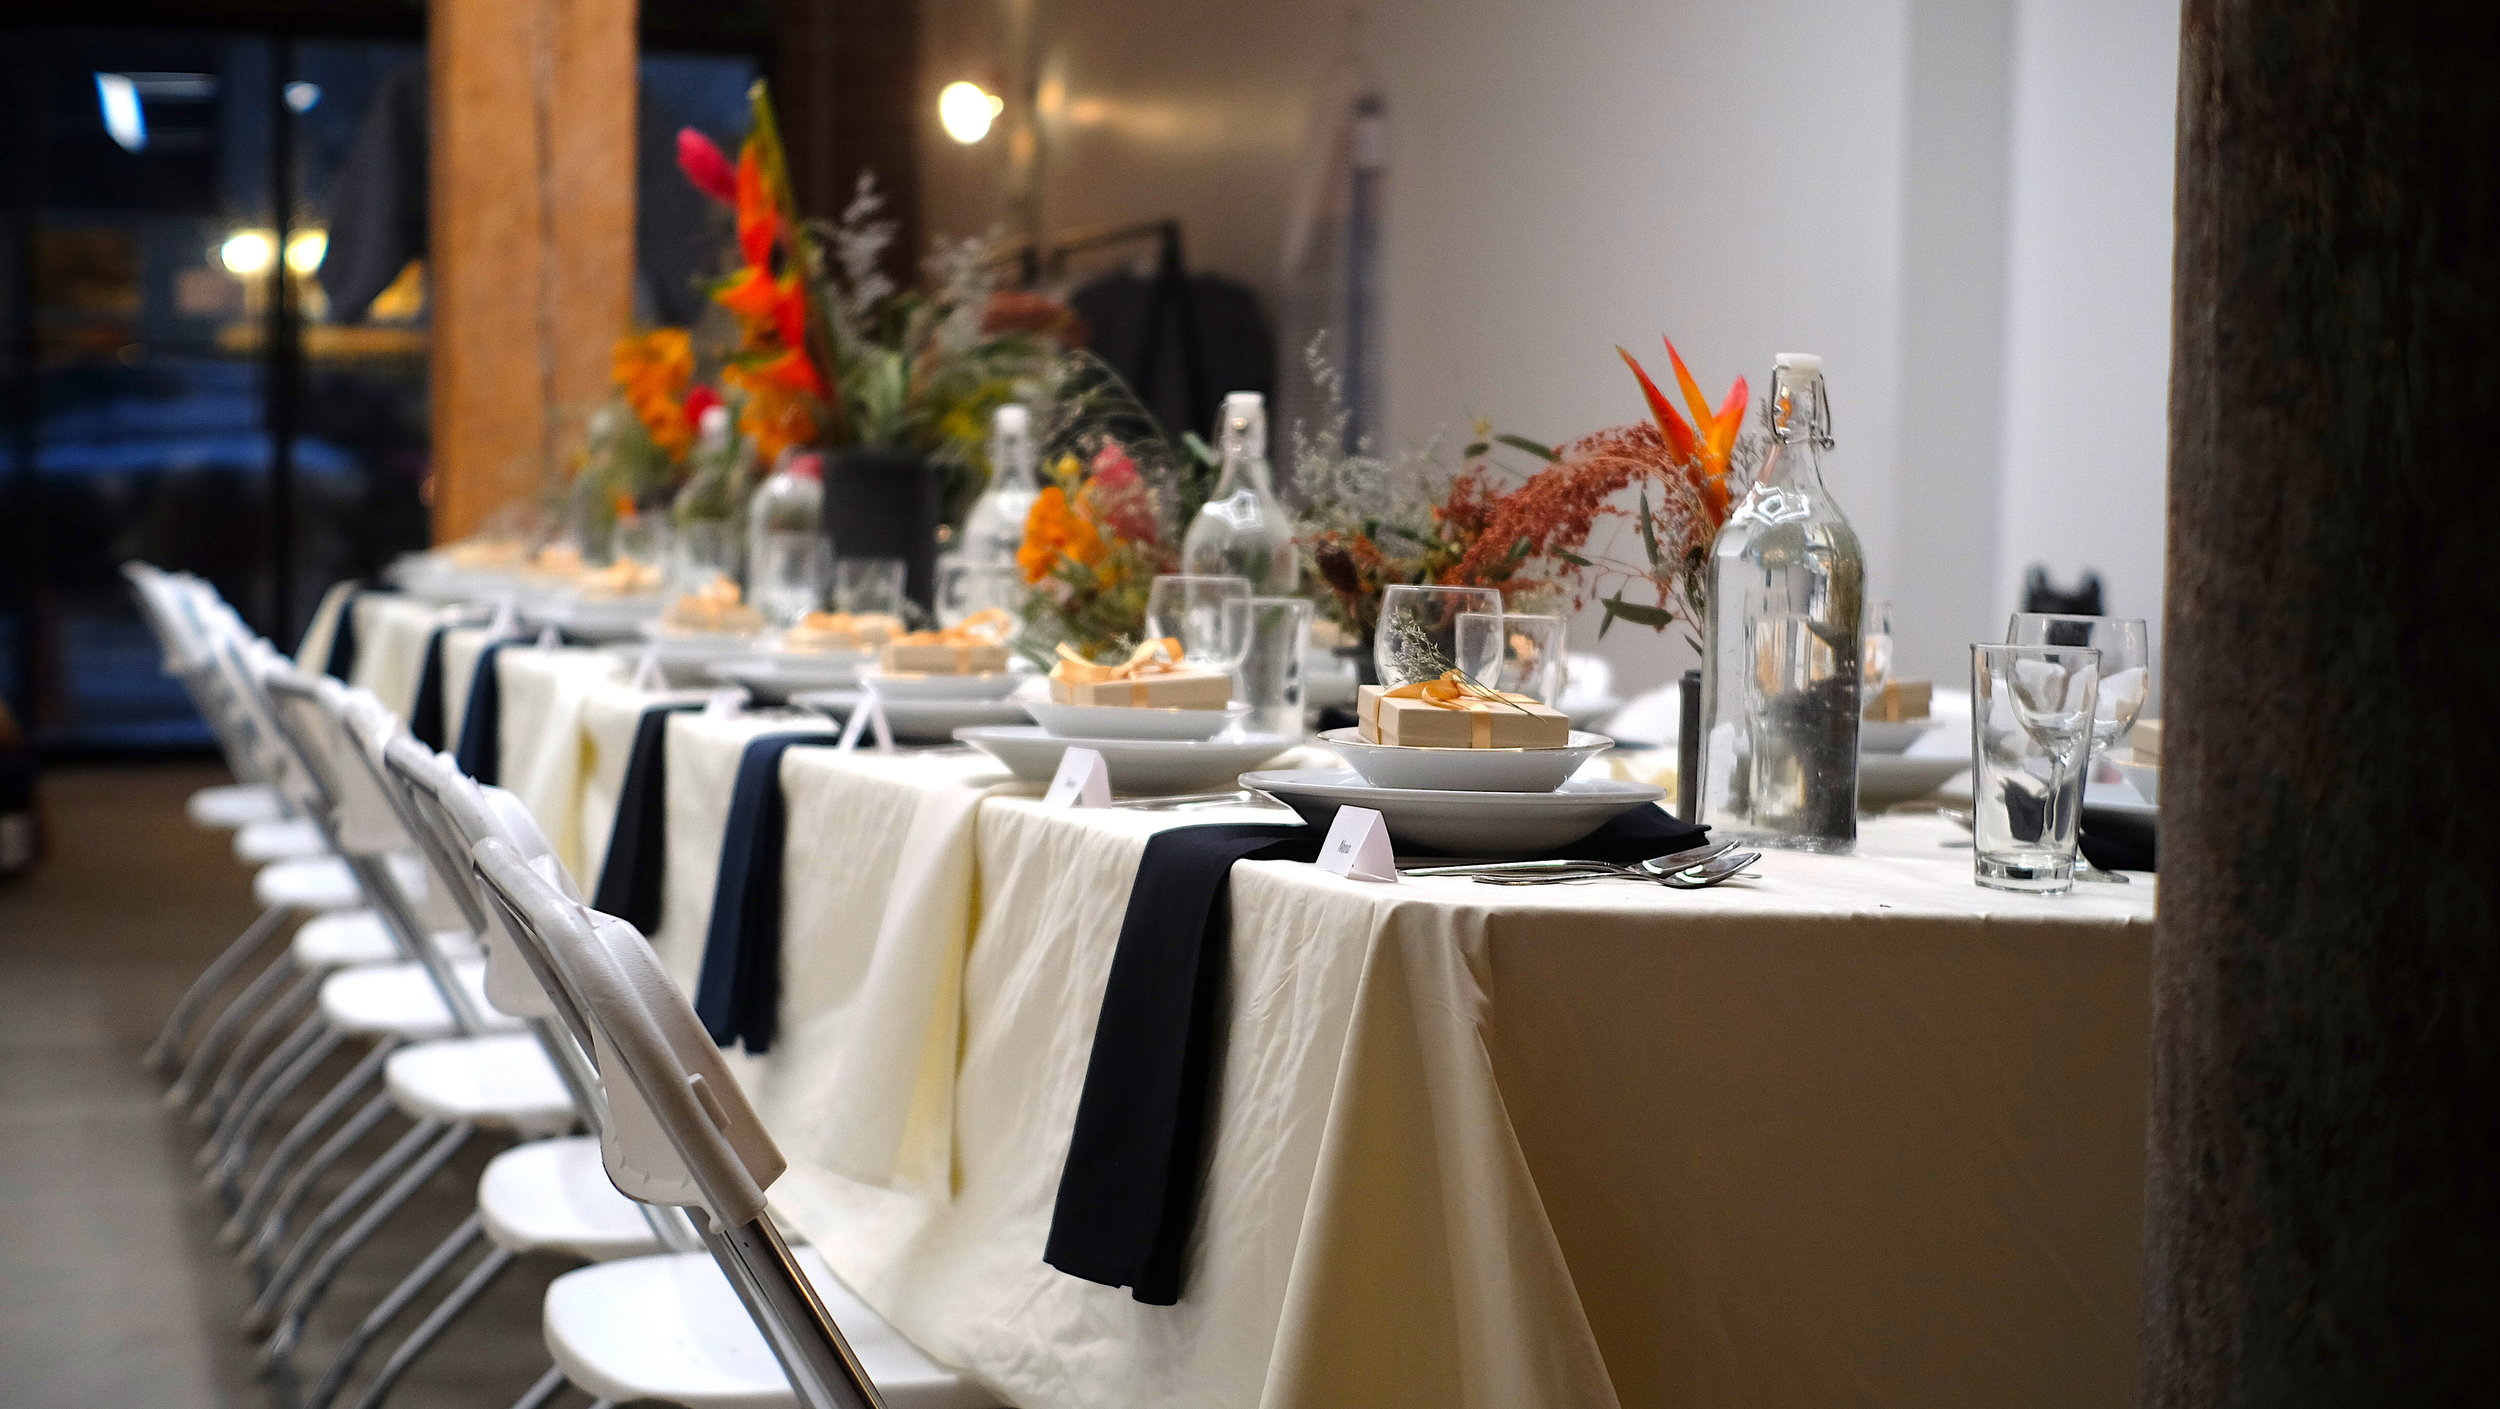 Large tables accommodate many guests in beautiful Brooklyn Neighborhood